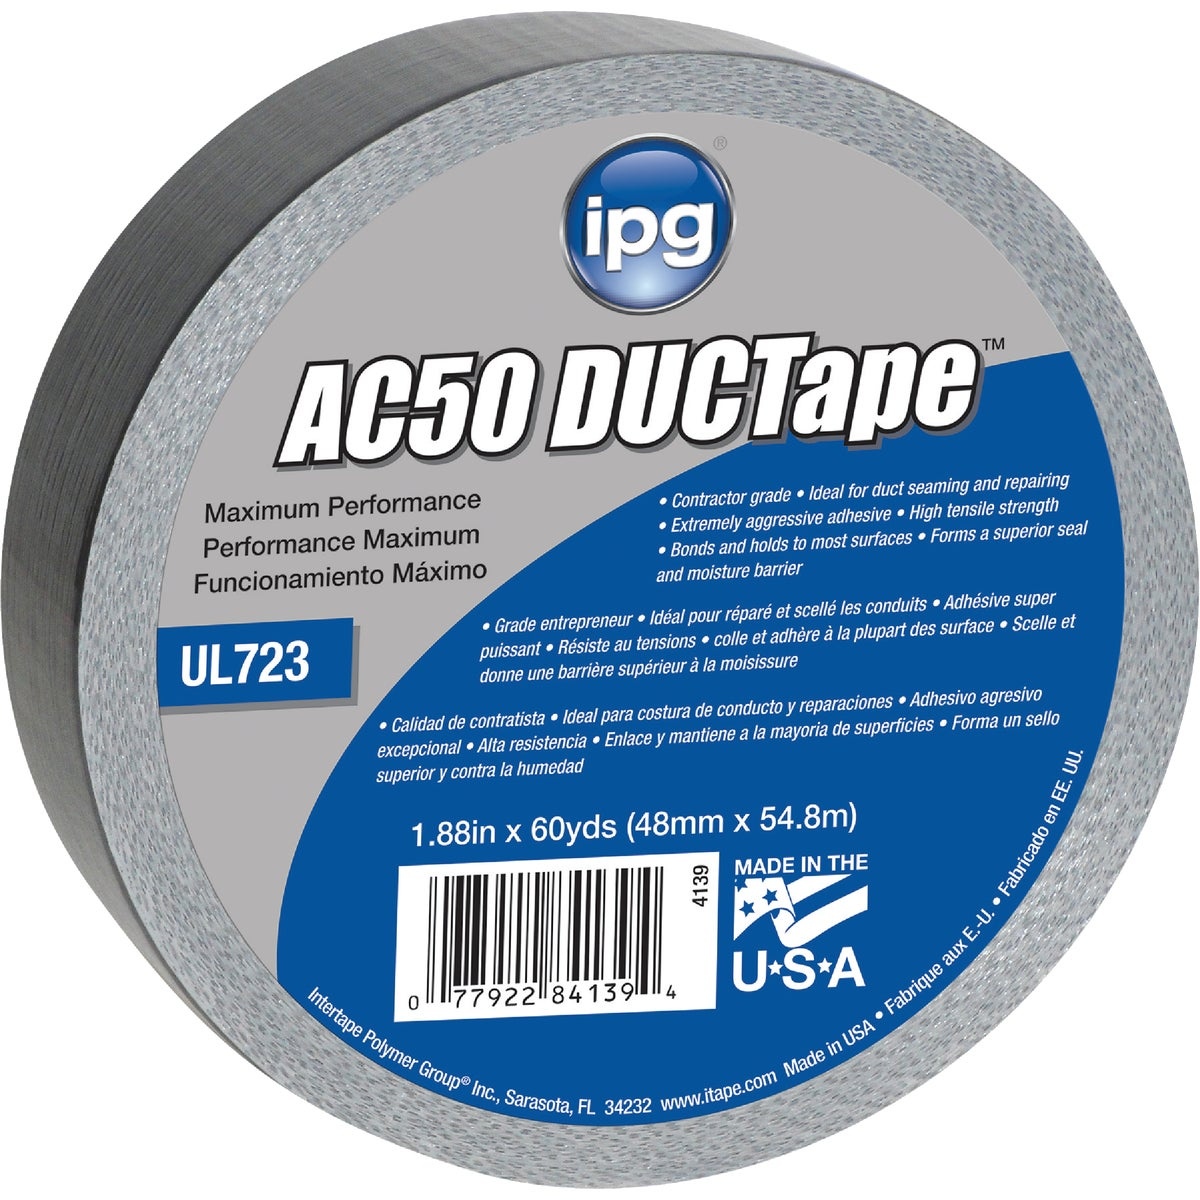 60YD ANRCHOR50 DUCT TAPE - 84139 by Intertape Polymer